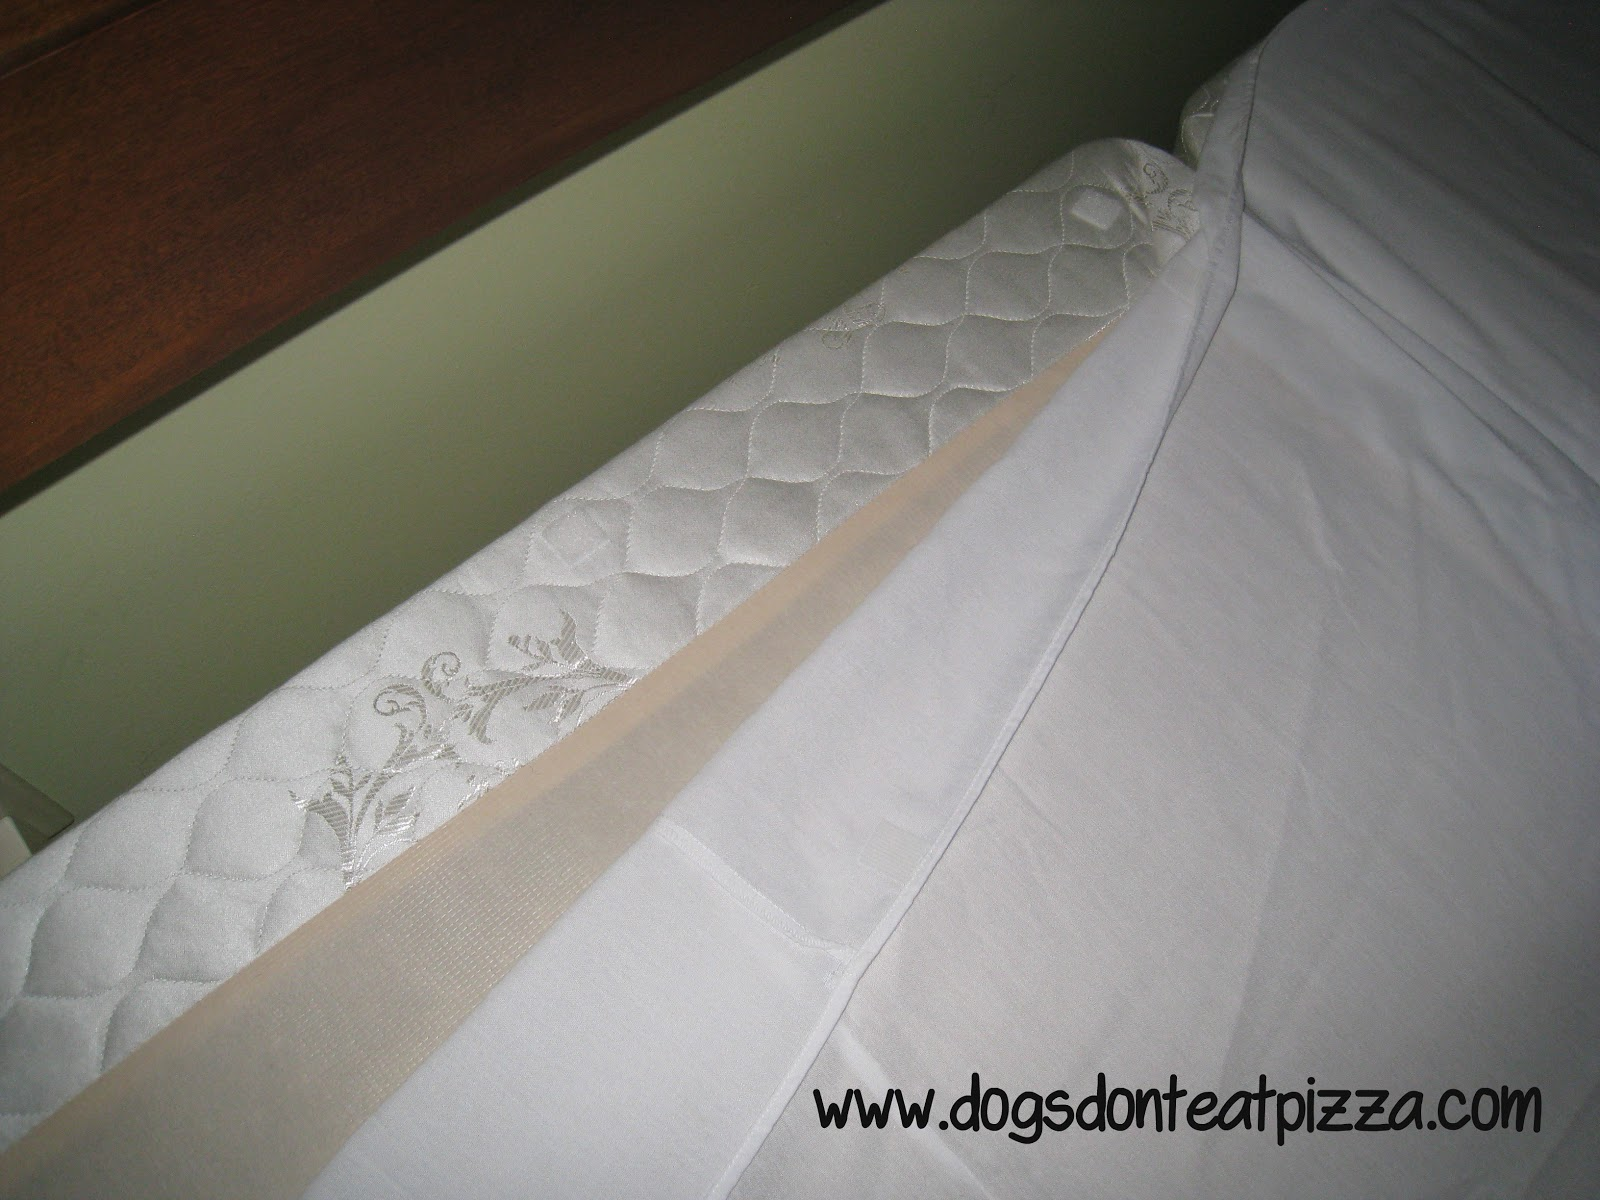 How To Keep A Bedskirt In Place Using Squares Of Hook And Loop (velcro)